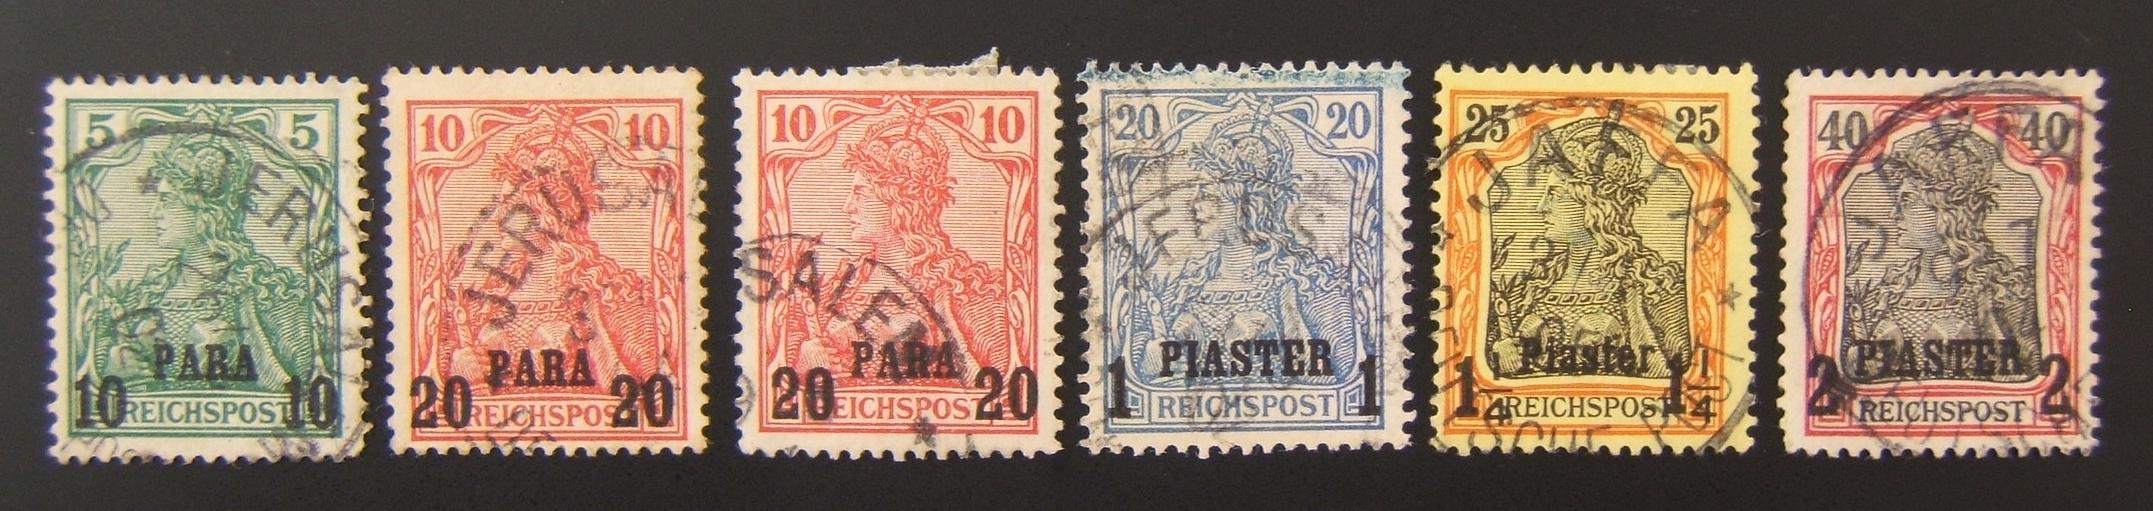 German Holyland post: lot x6 pmkd Jer. & Jaffa 1900 Germania Reichspost stamps